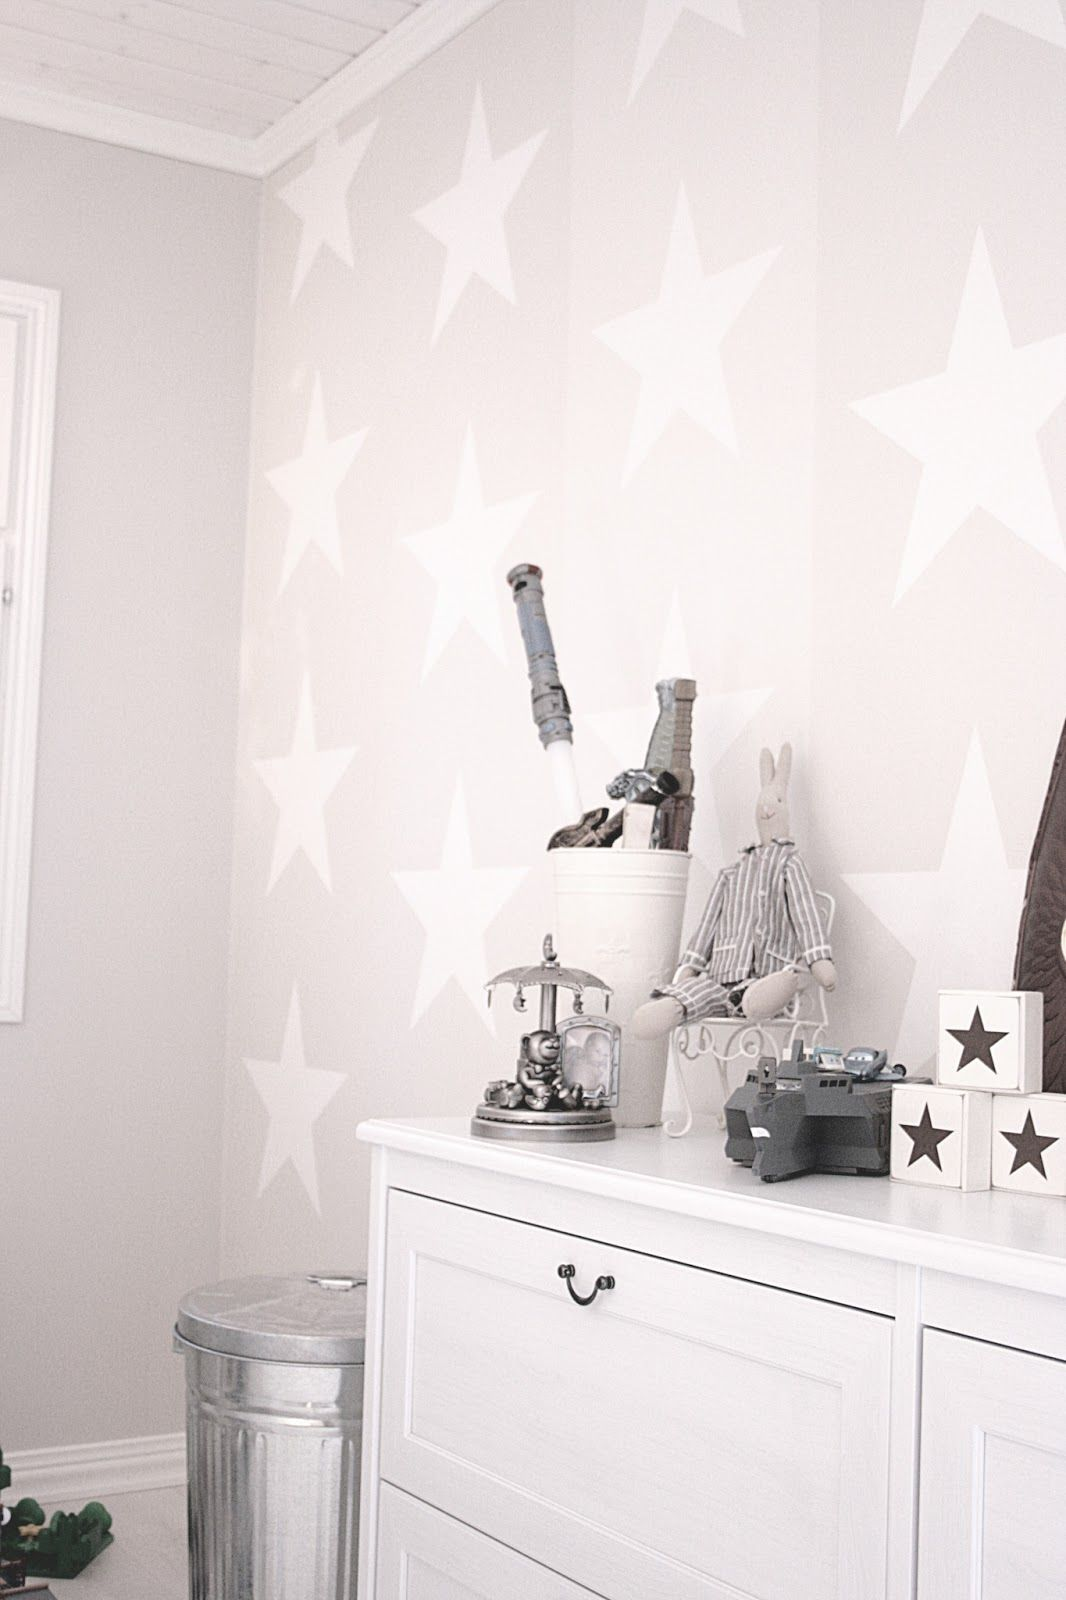 Mia Baby Bedroom Furniture: I Like The Light Grey Walls With The White Accents (stars